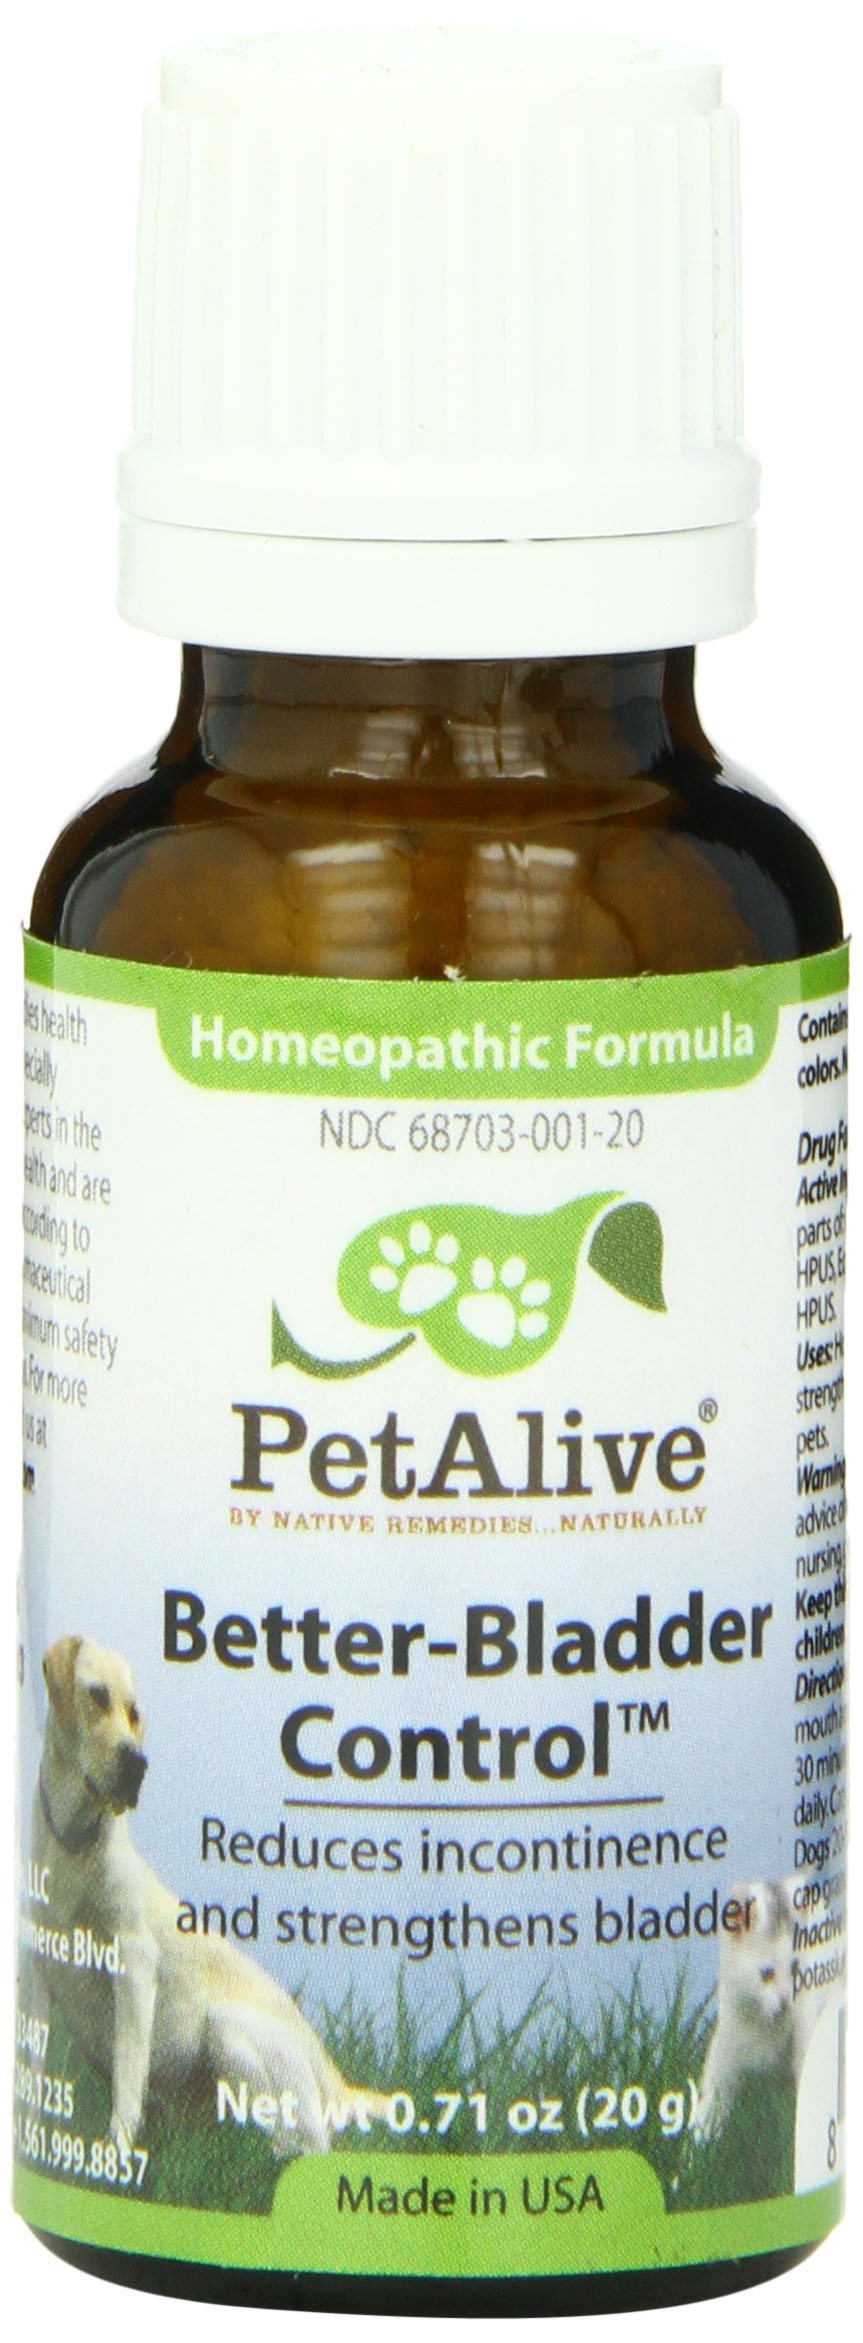 Pet Alive Better-Bladder Control, Granules